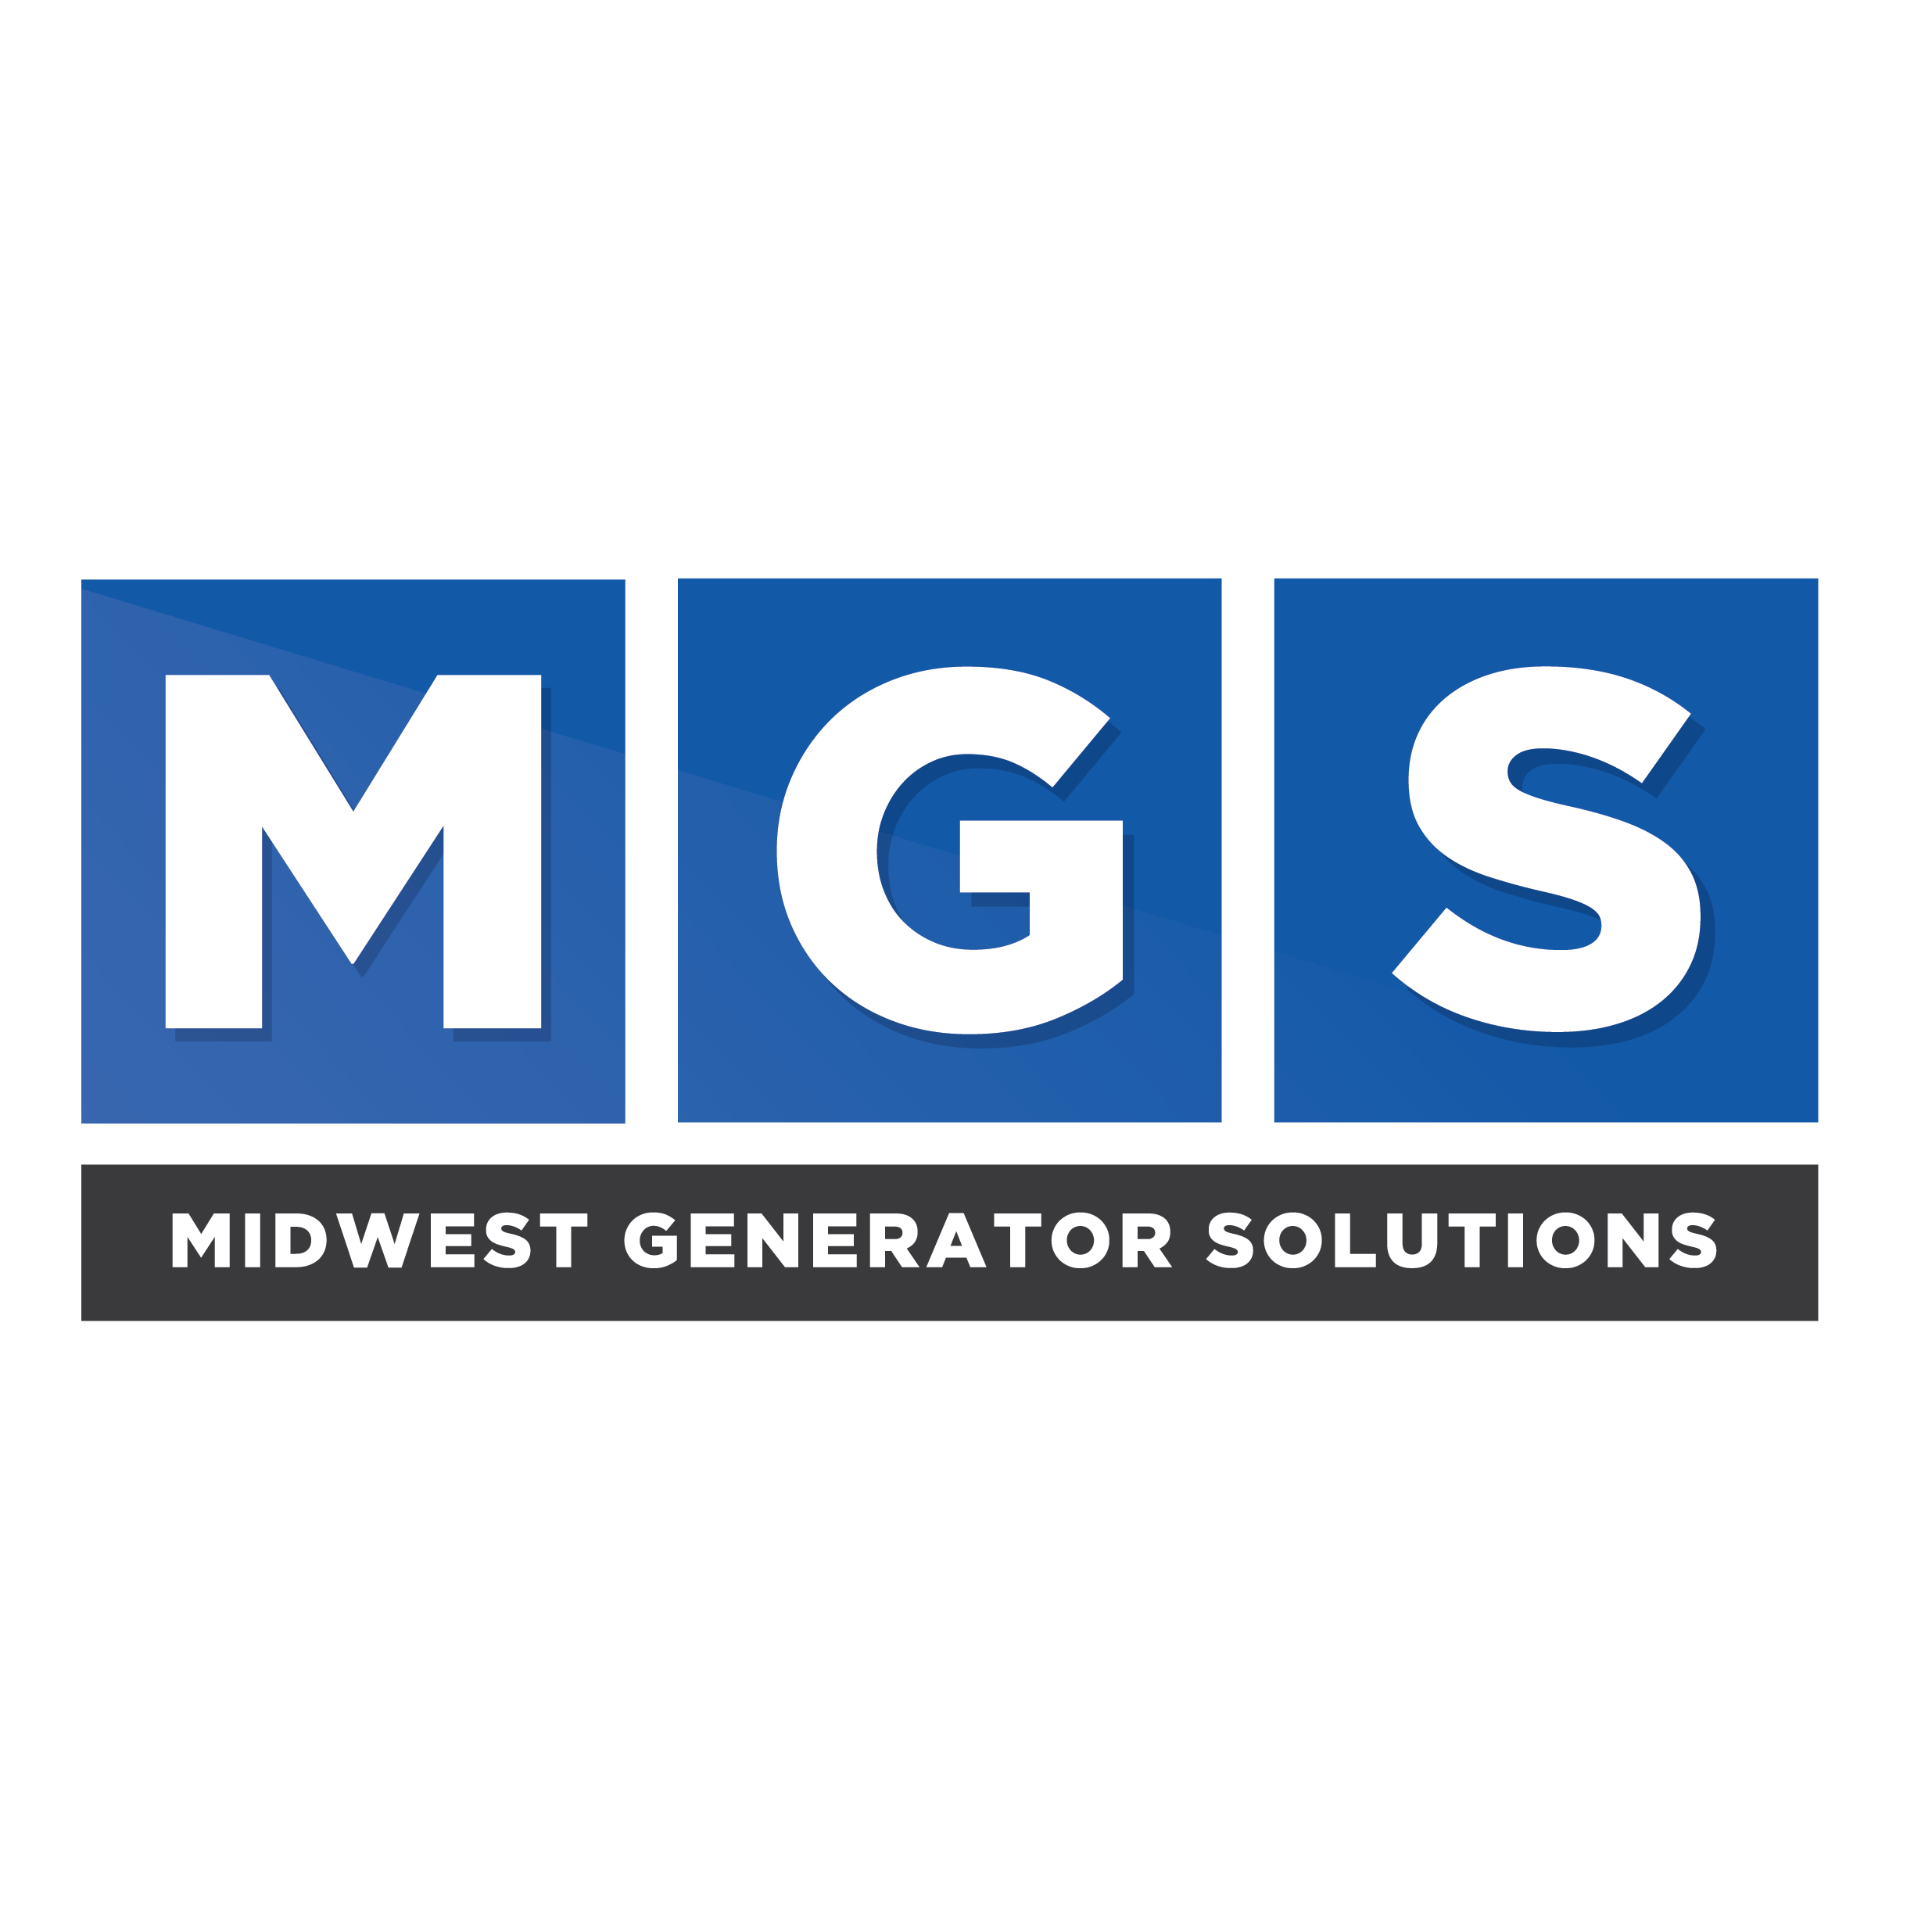 Electrician in IN Mooresville 46158 Midwest Generator Solutions 310 Indianapolis Rd. Suite K (317)831-8677